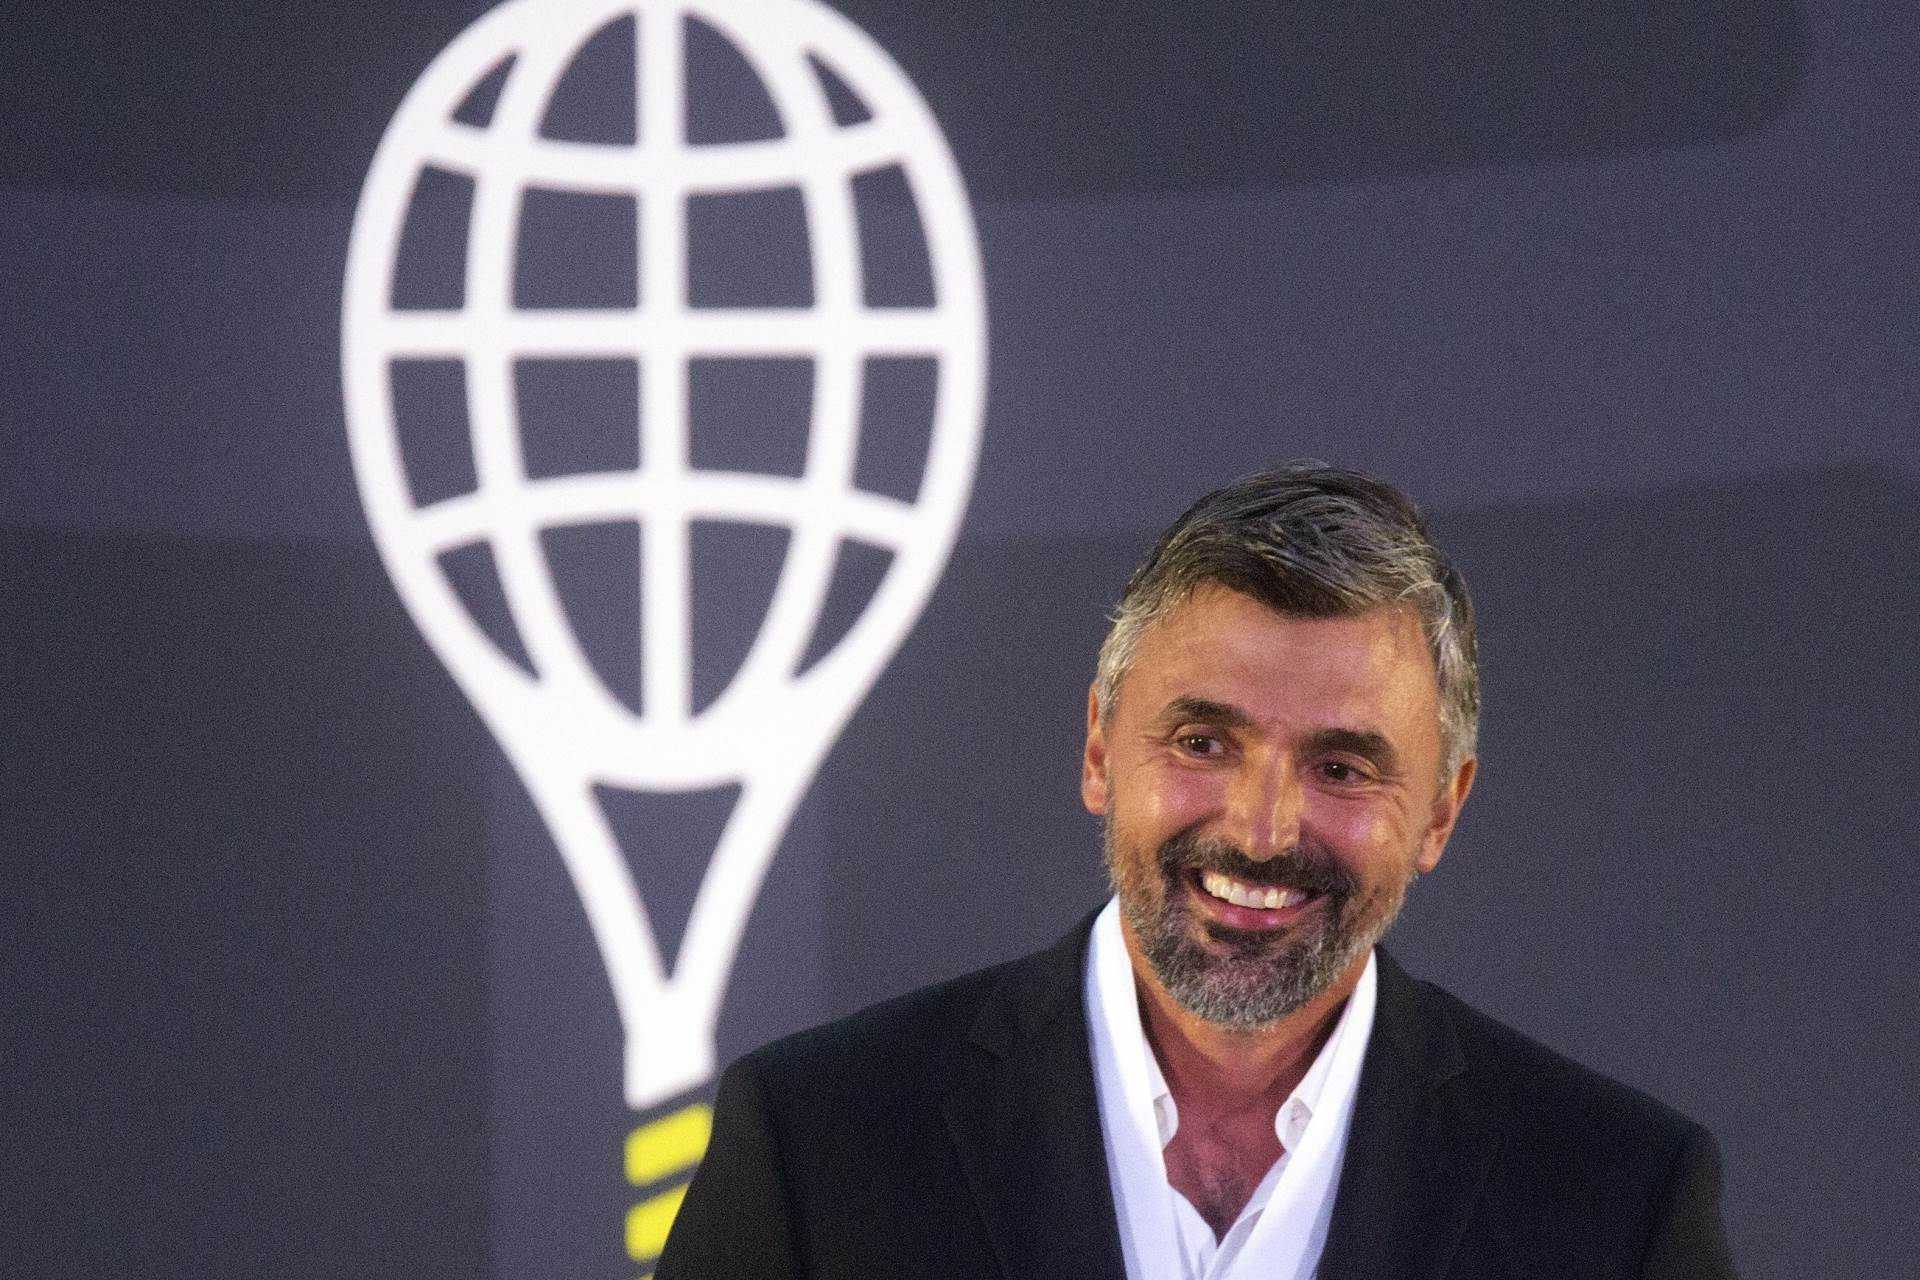 Goran Ivanisevic speaks after being inducted into the International Tennis Hall of Fame, Saturday, July 17, 2021, in Newport, R.I. (AP Photo/Michael Dwyer)